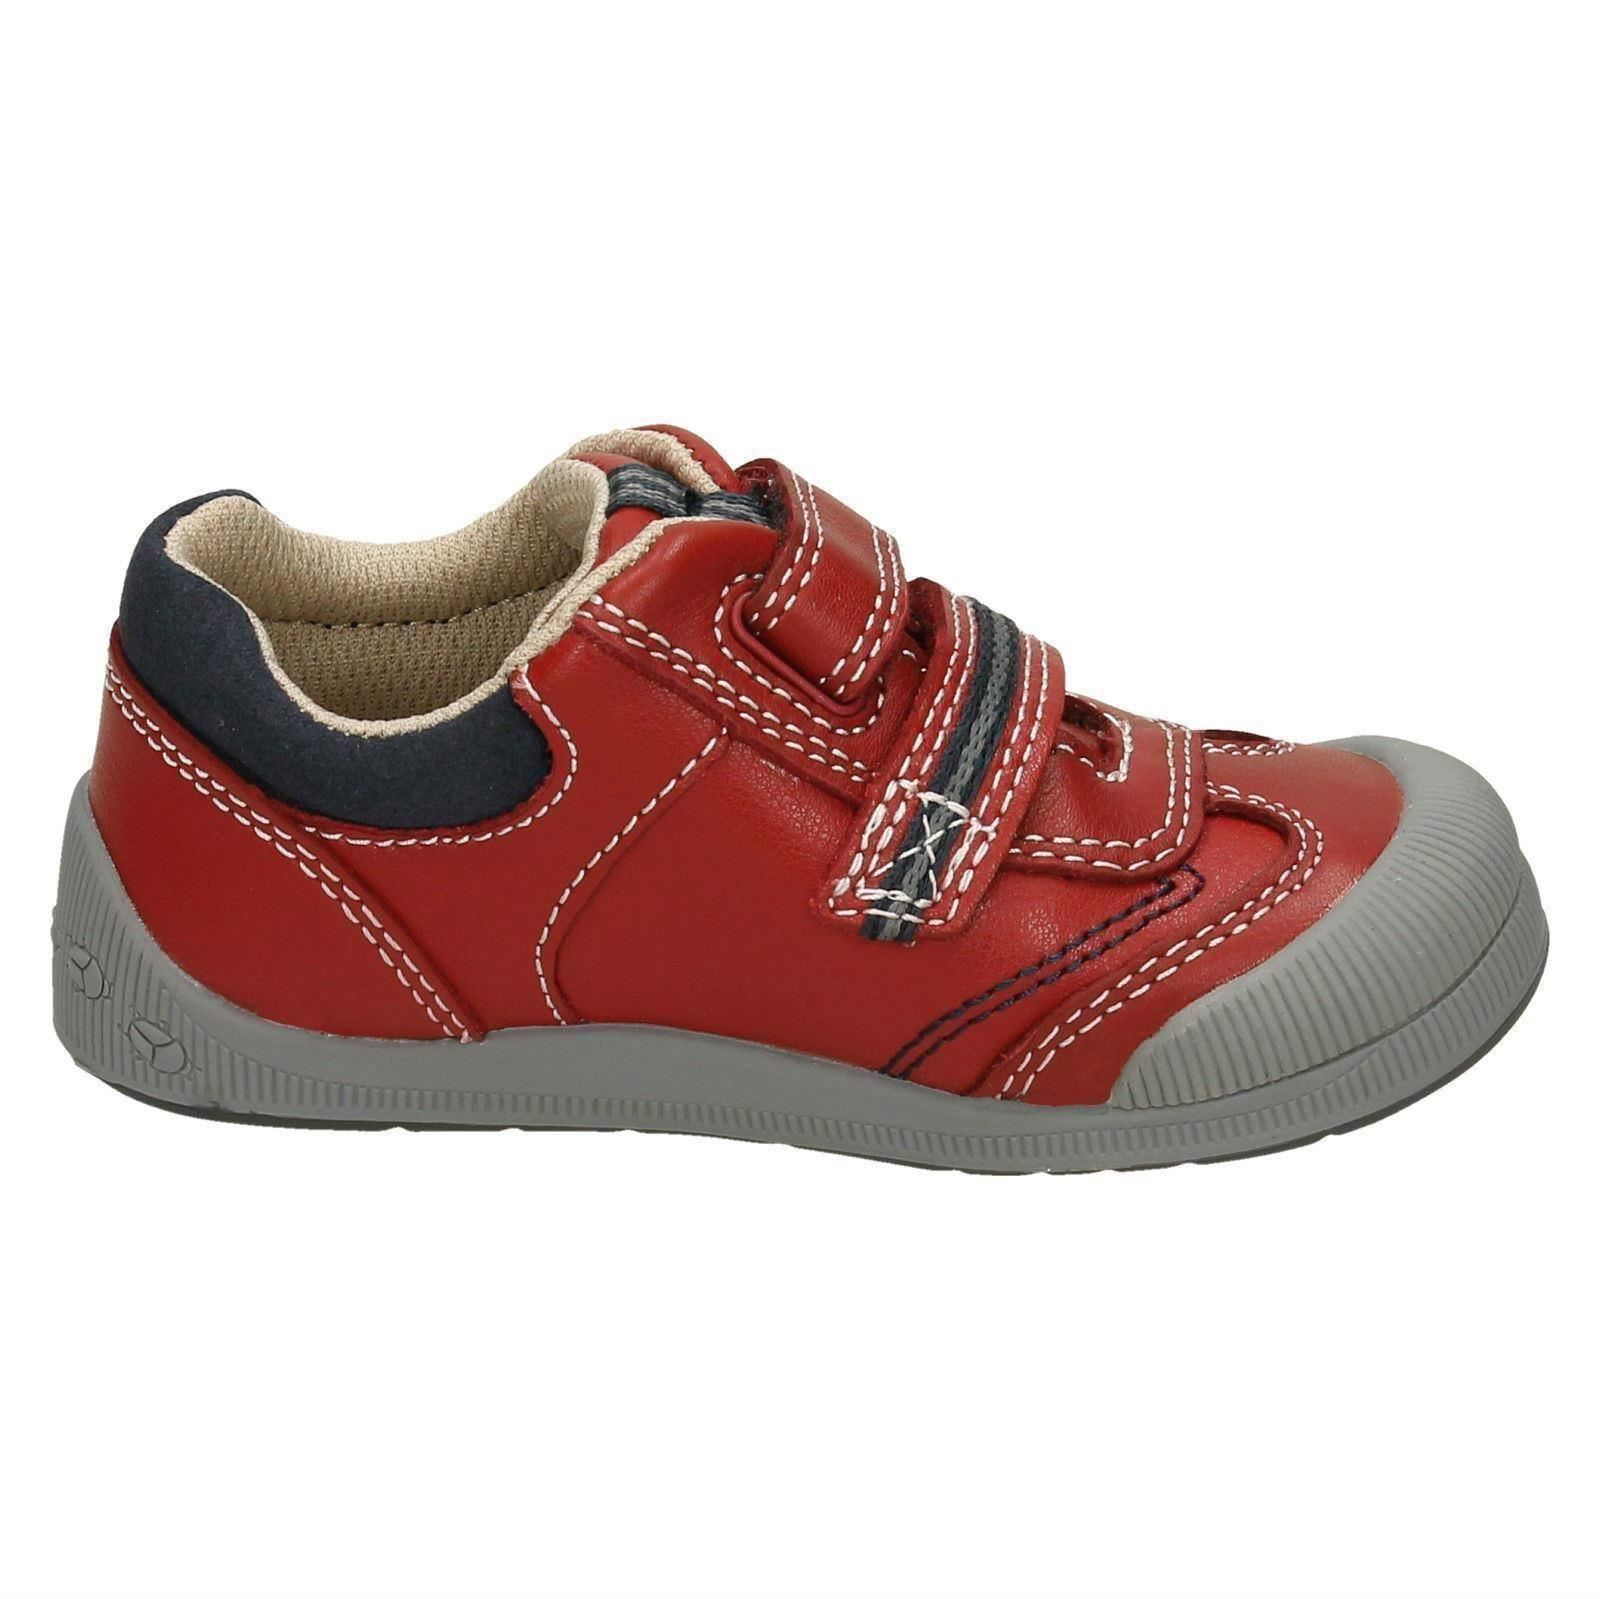 Boys Startrite /'Tough Bug/' Fst Casual Shoes